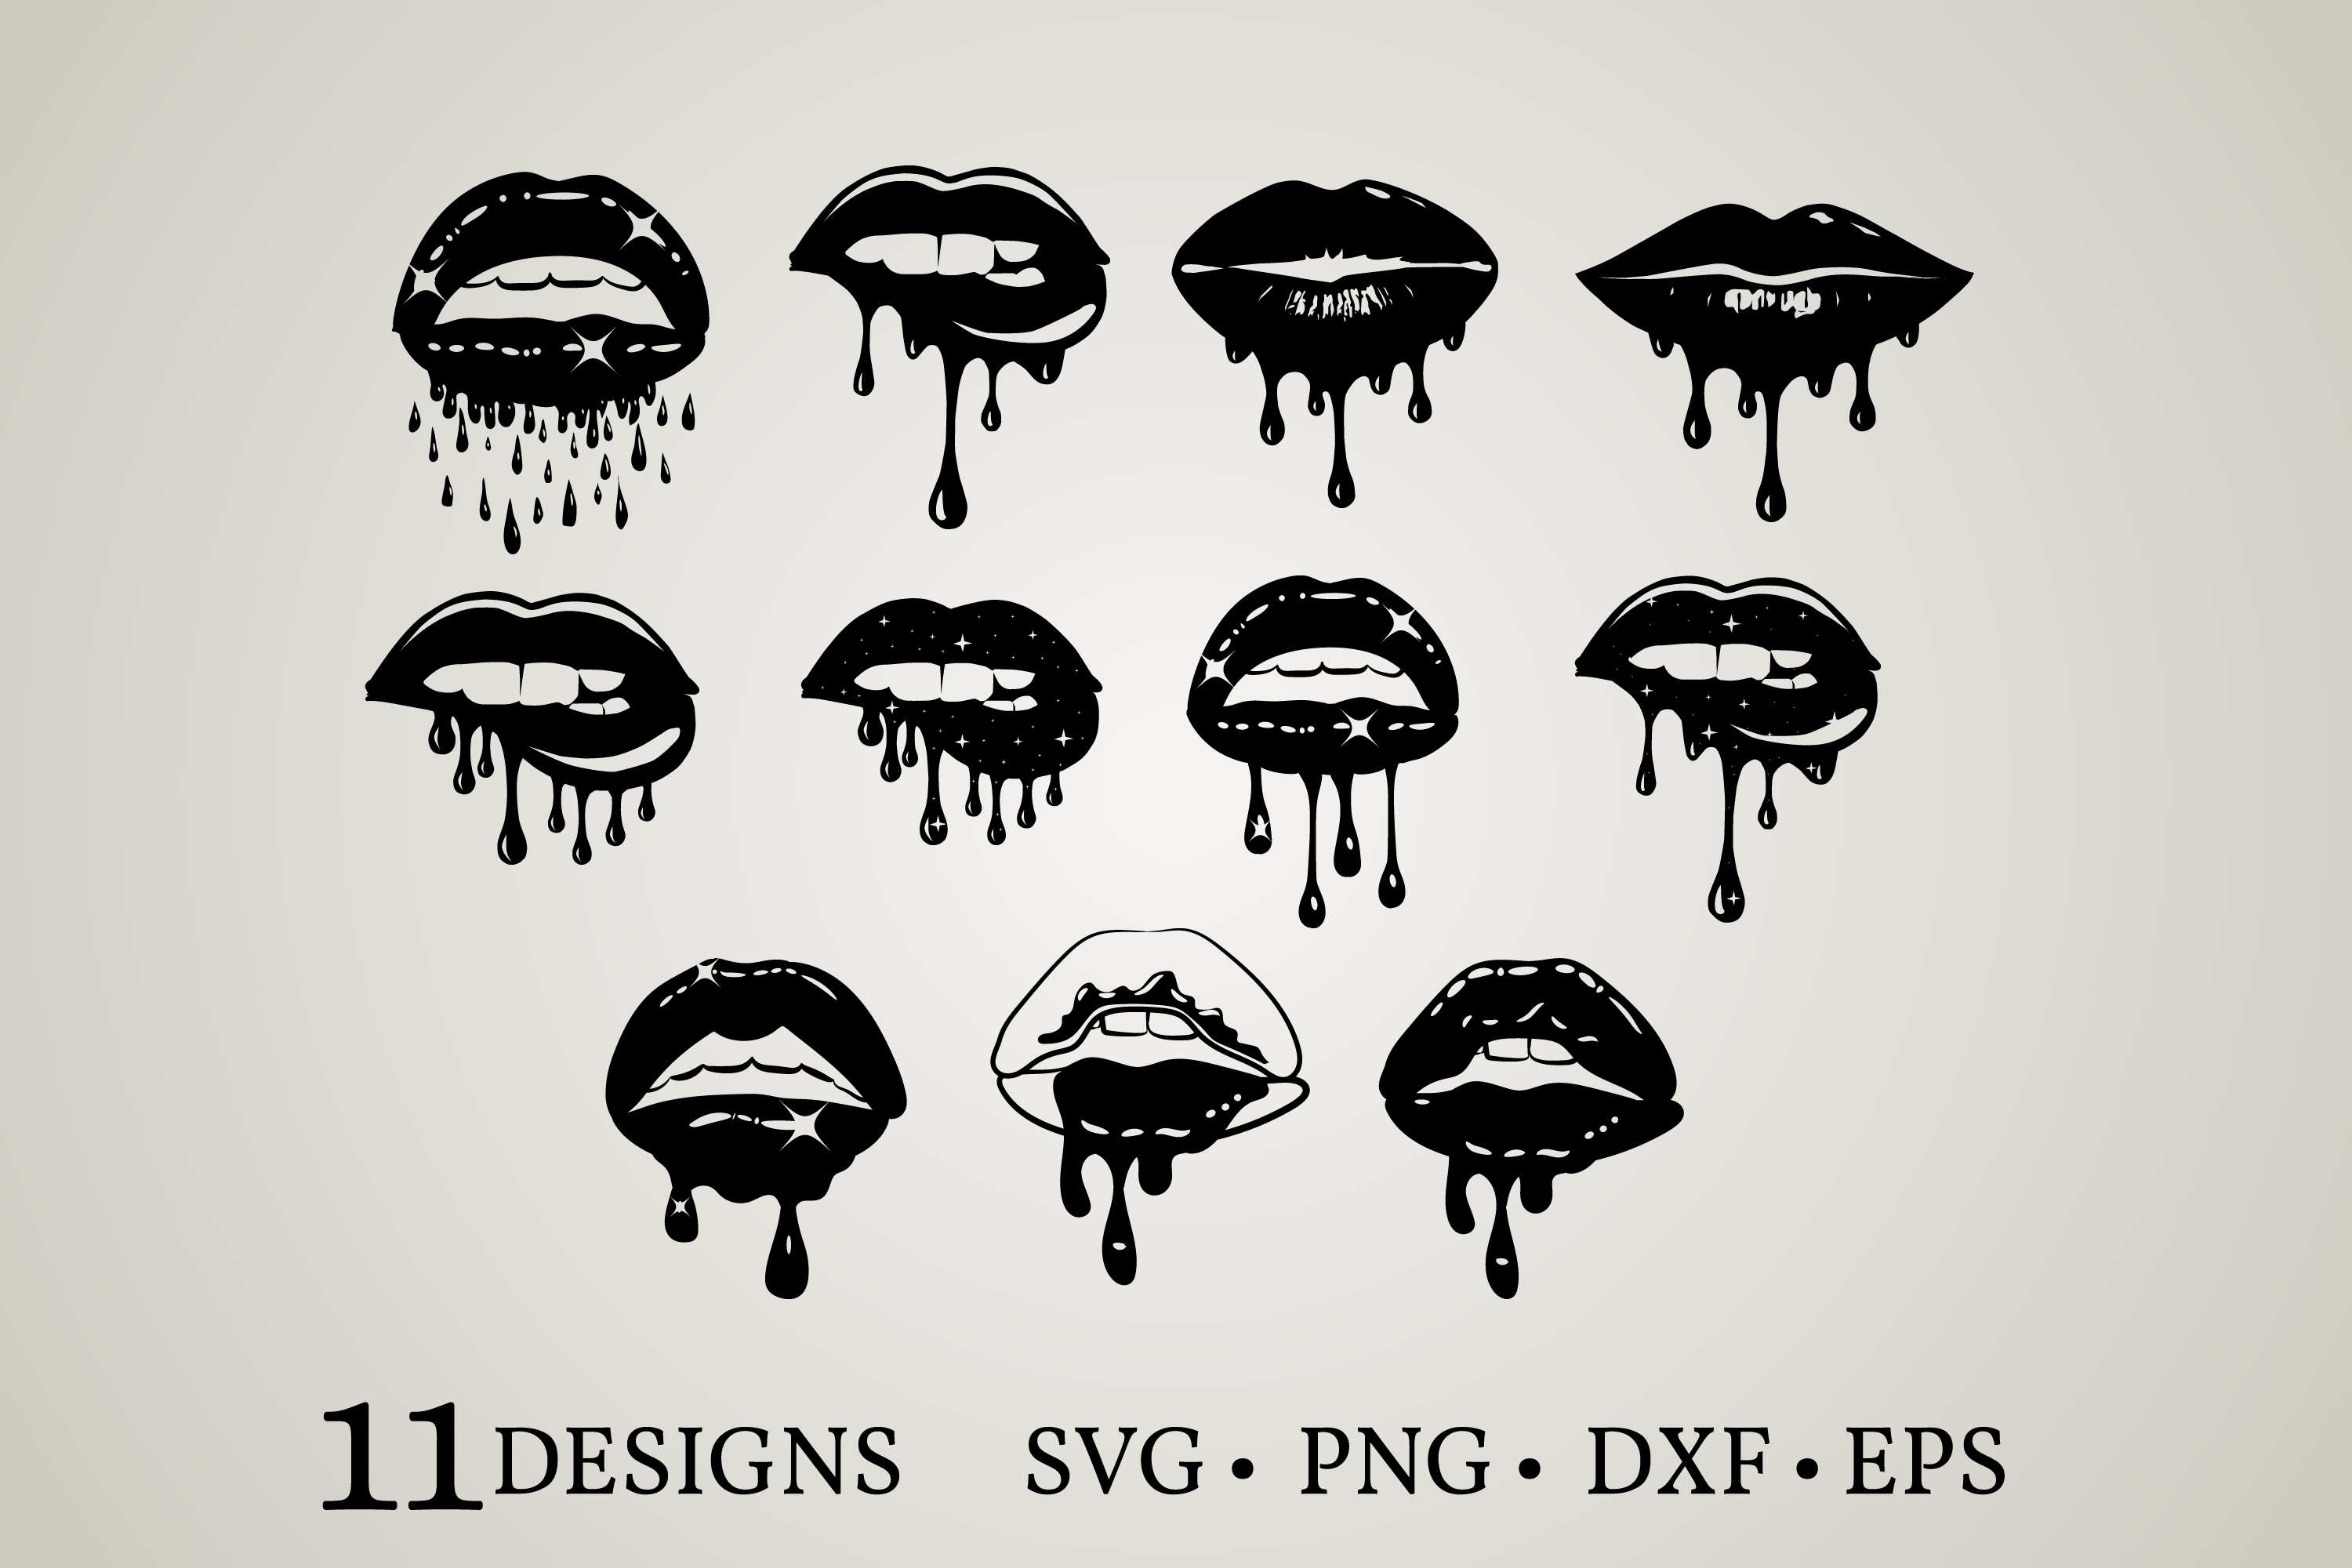 Download Free Dripping Lips Bundle Graphic By Euphoria Design Creative Fabrica for Cricut Explore, Silhouette and other cutting machines.